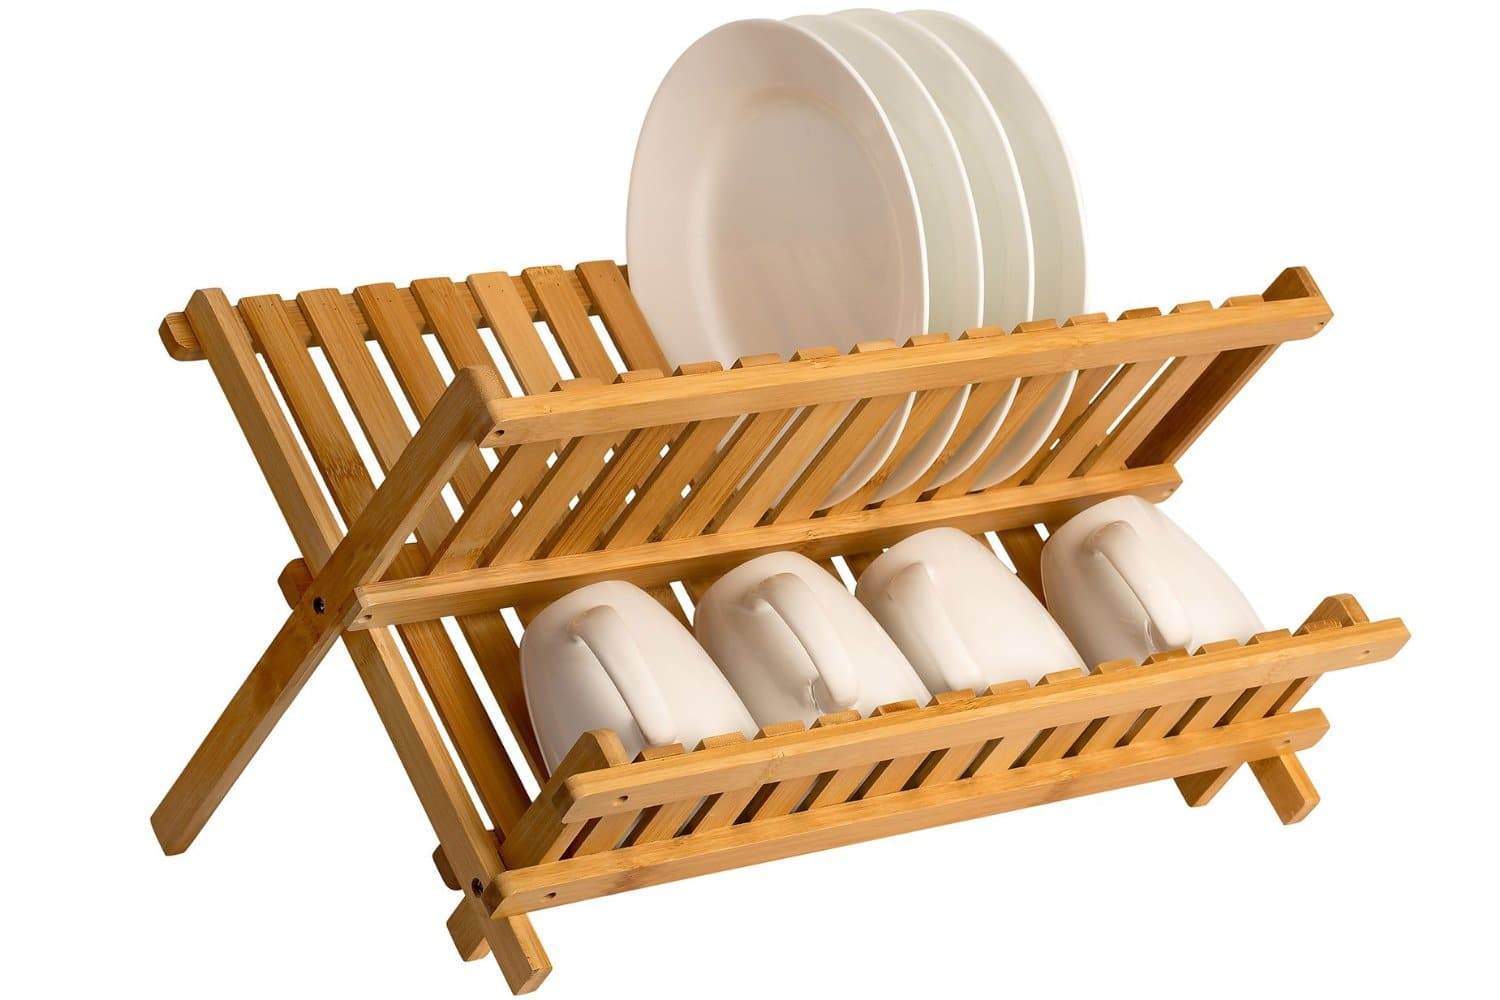 Top 10 Best Dish Racks in 2019 - HQReview